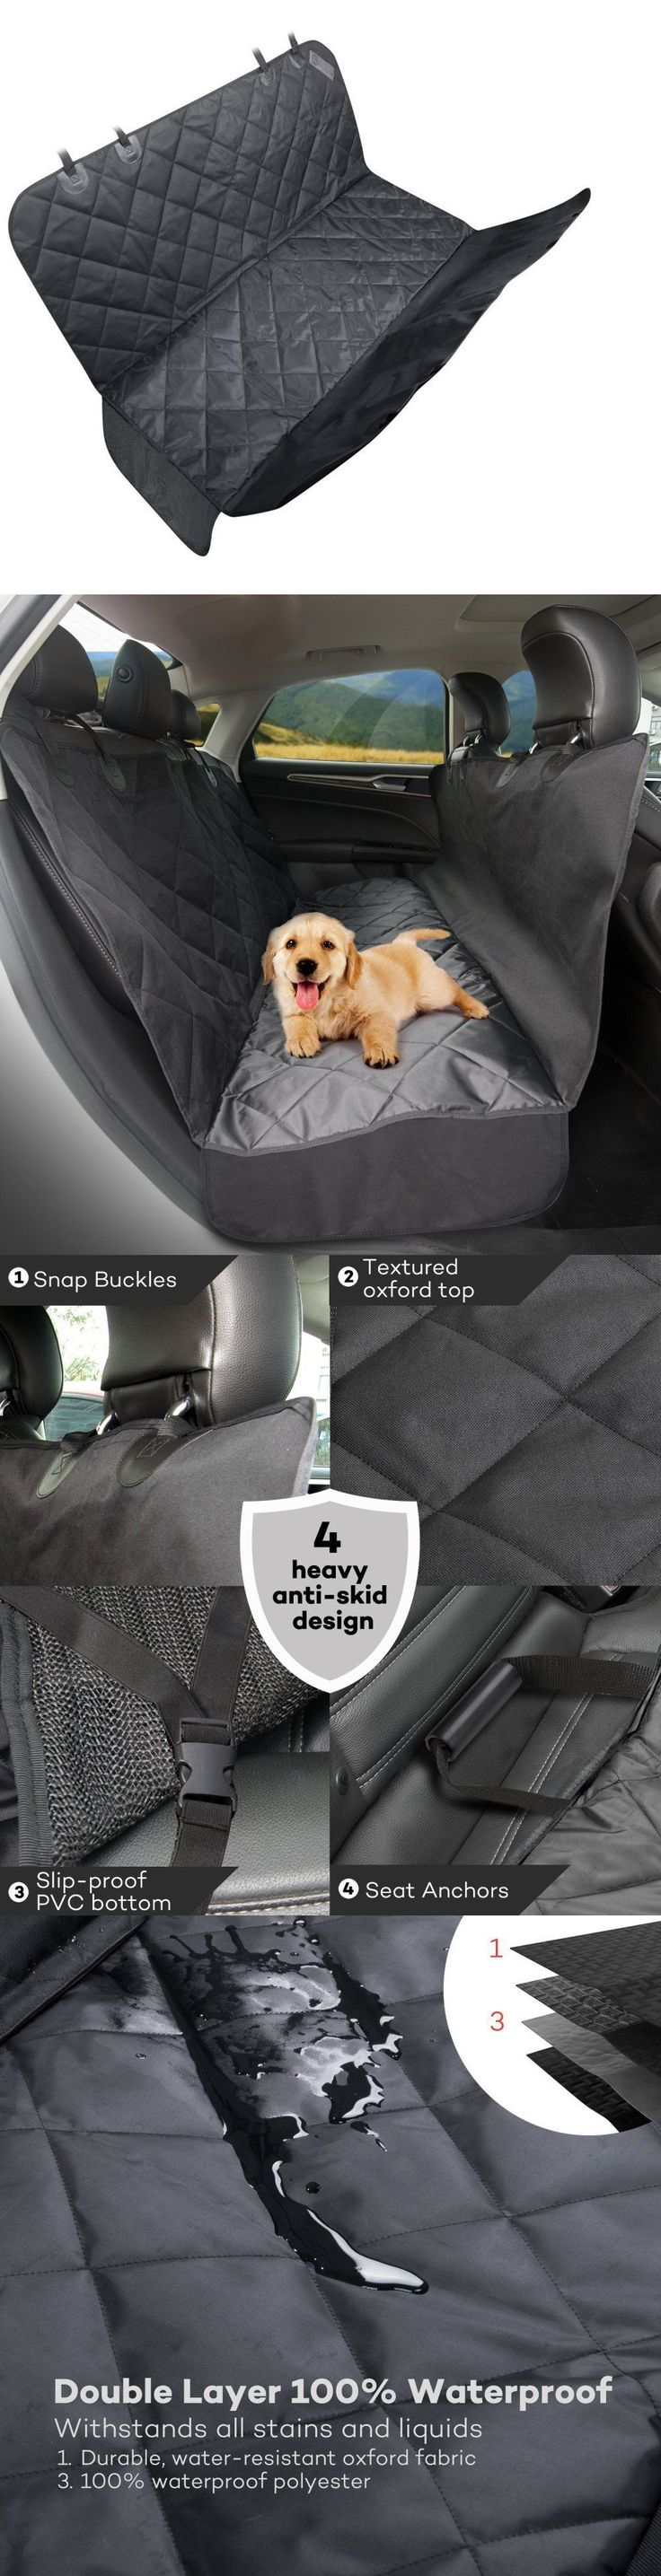 Car Seat Covers 117426: Taotronics Dog Seat Car Cover - Pet Hammock, Waterproof Rear Protector, Back Mat -> BUY IT NOW ONLY: $33.83 on eBay!